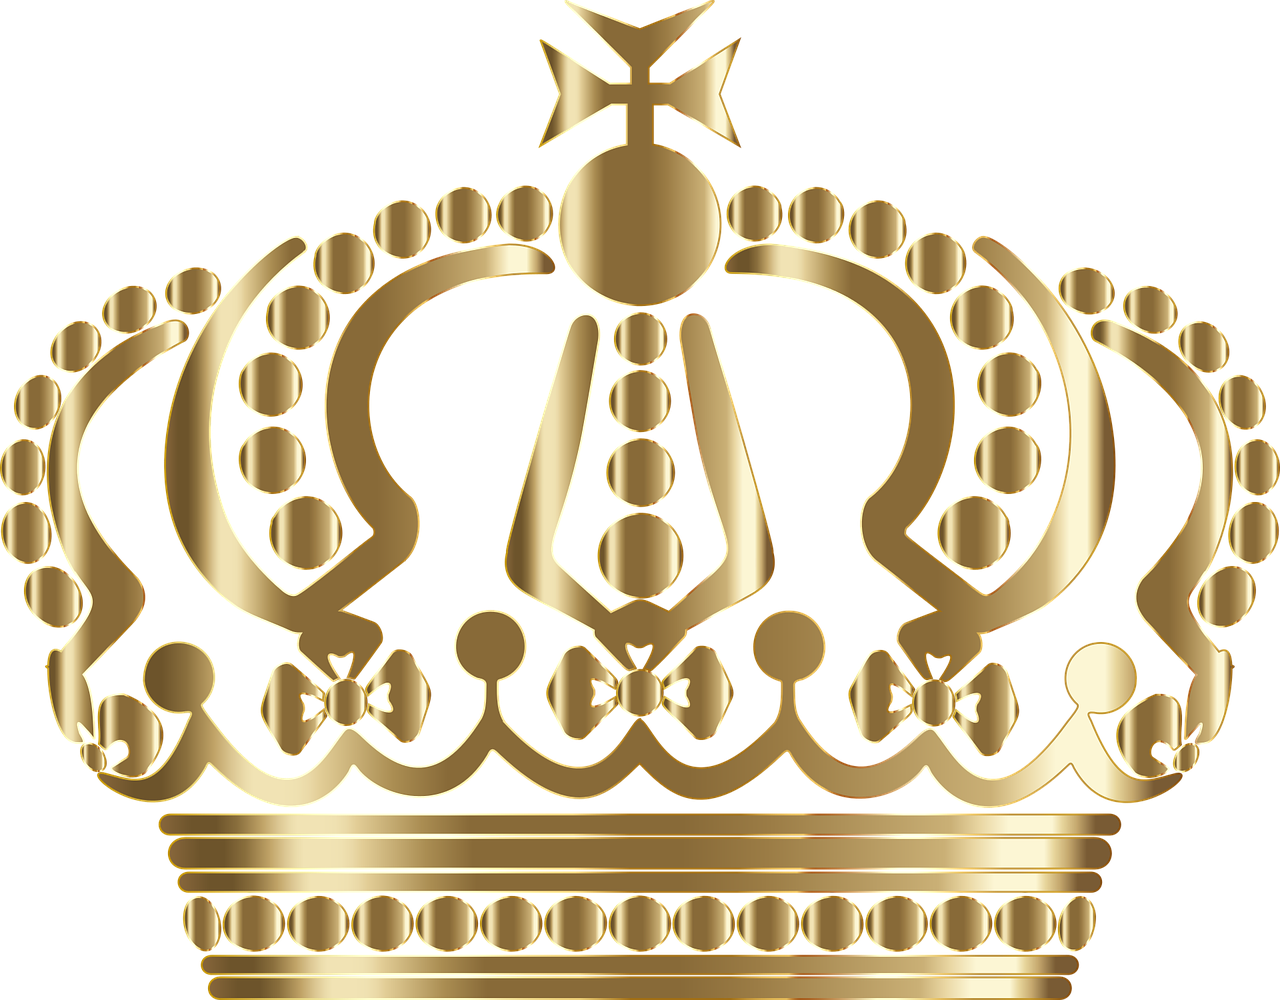 German crown royal king. Keys clipart consistency